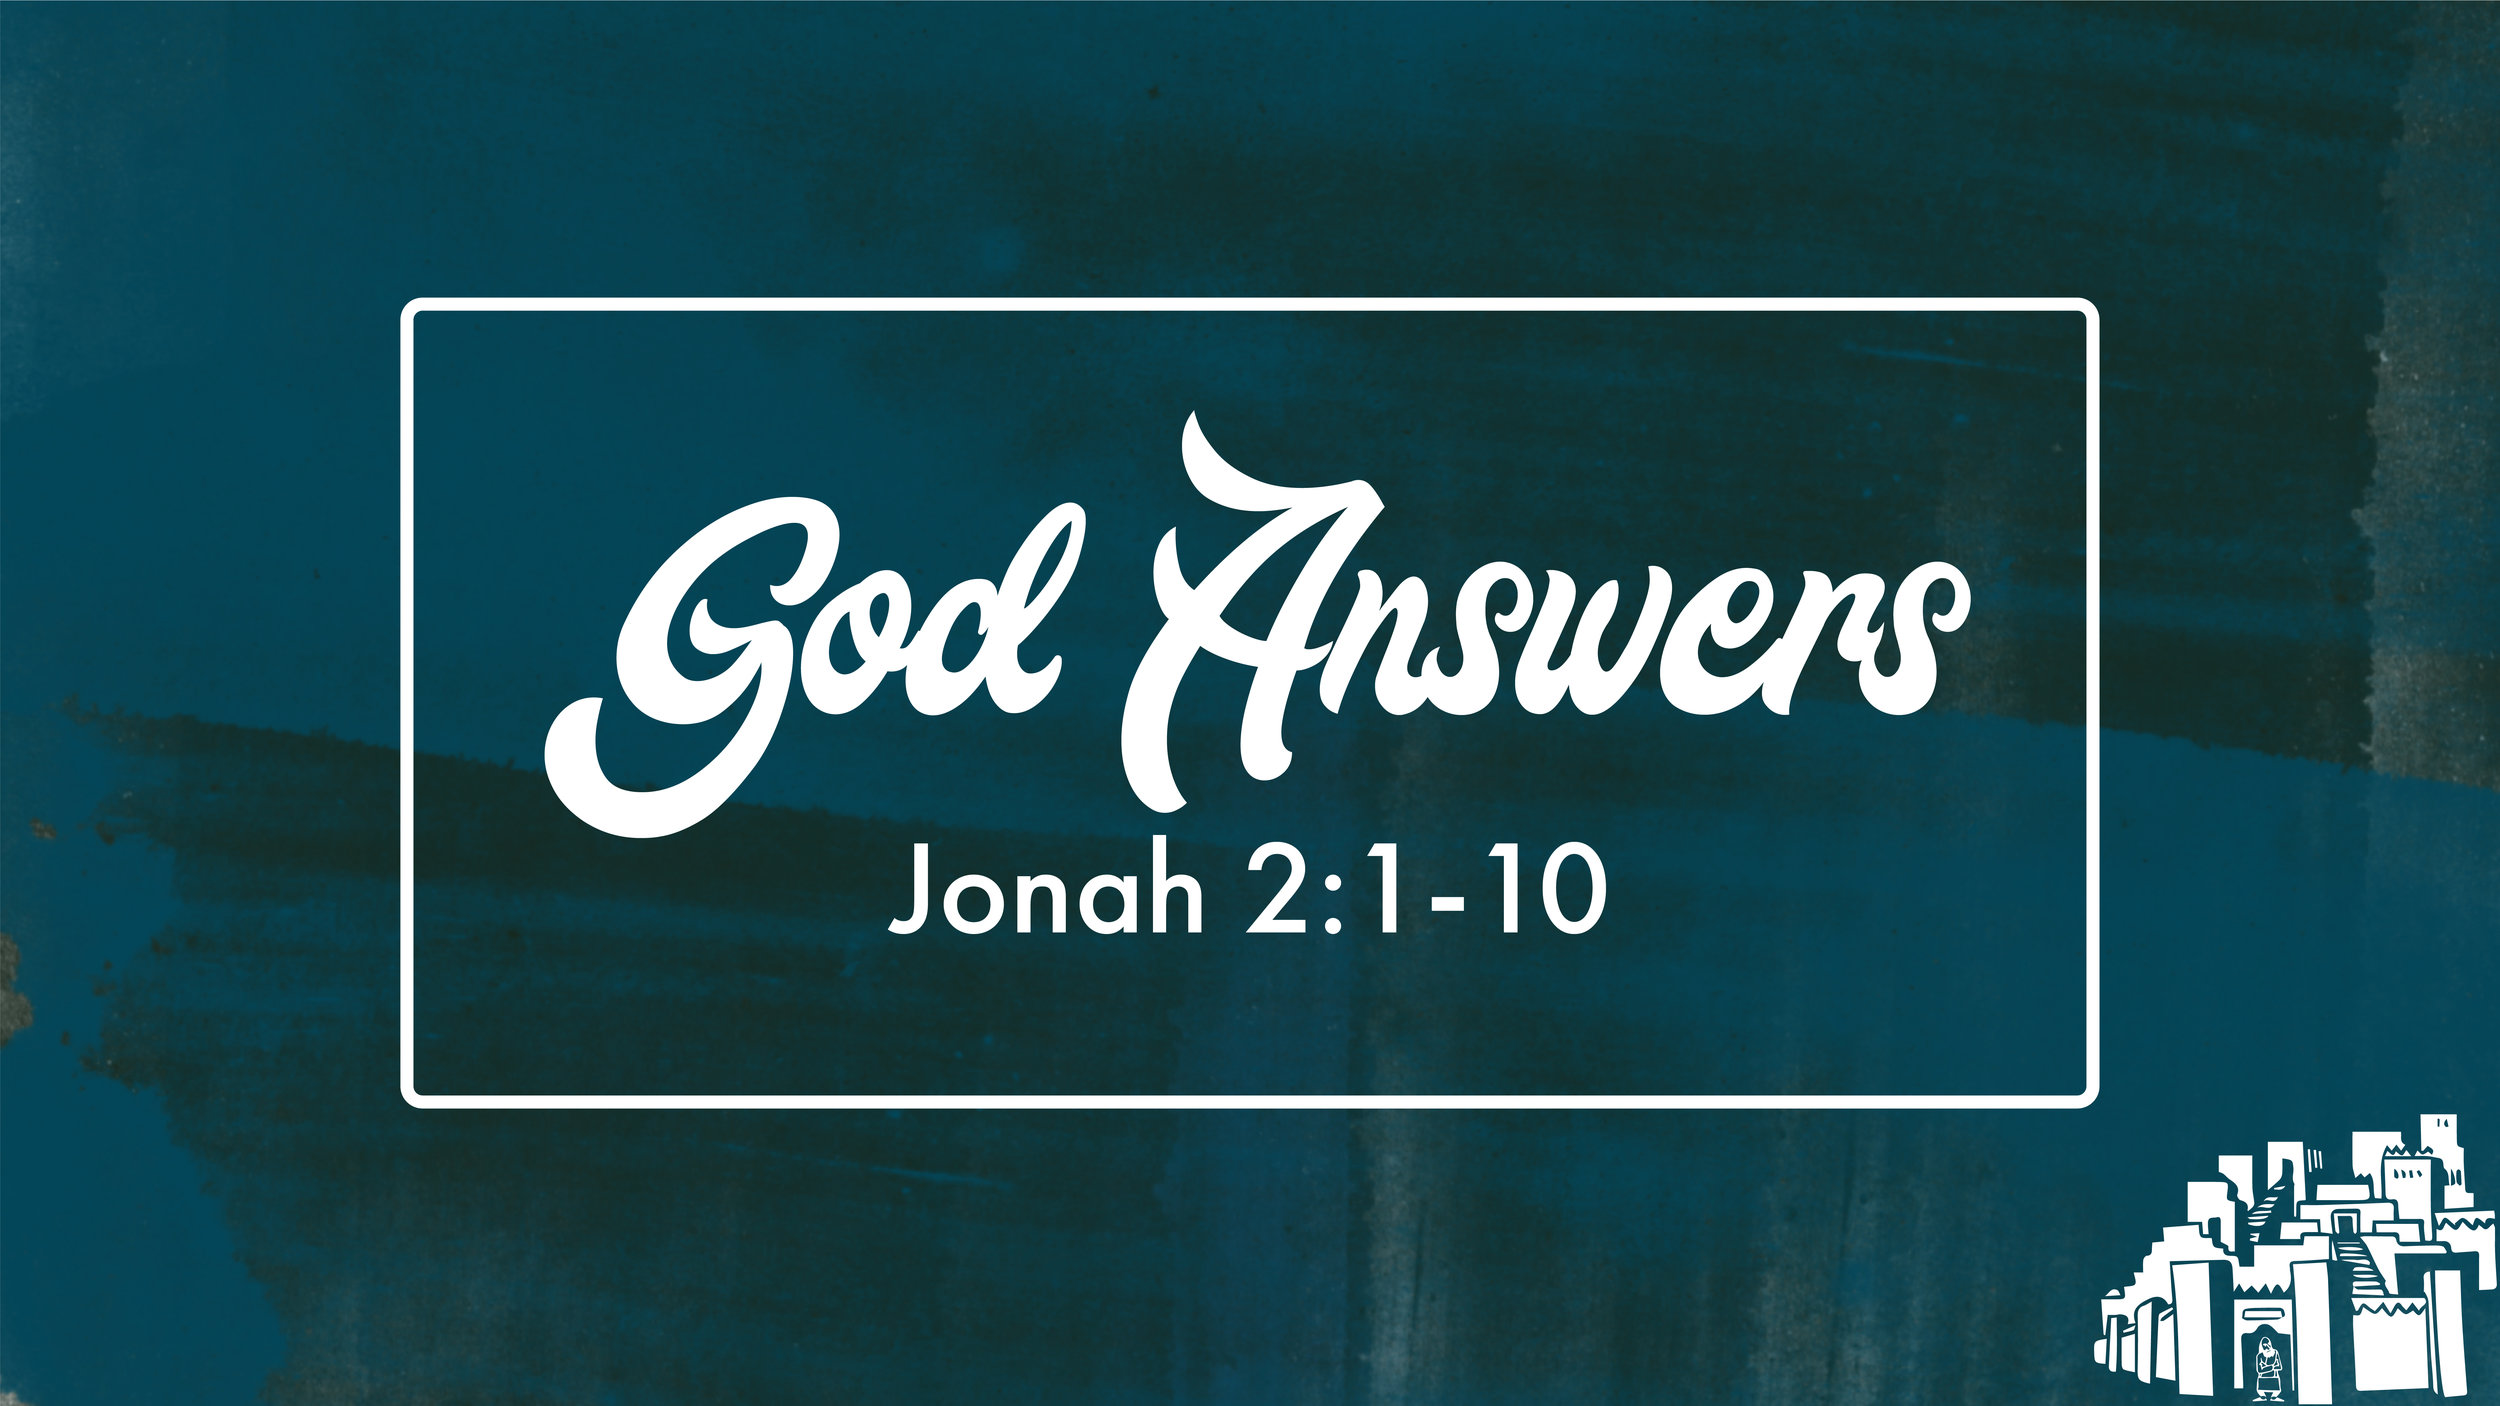 God Answers-06.jpg